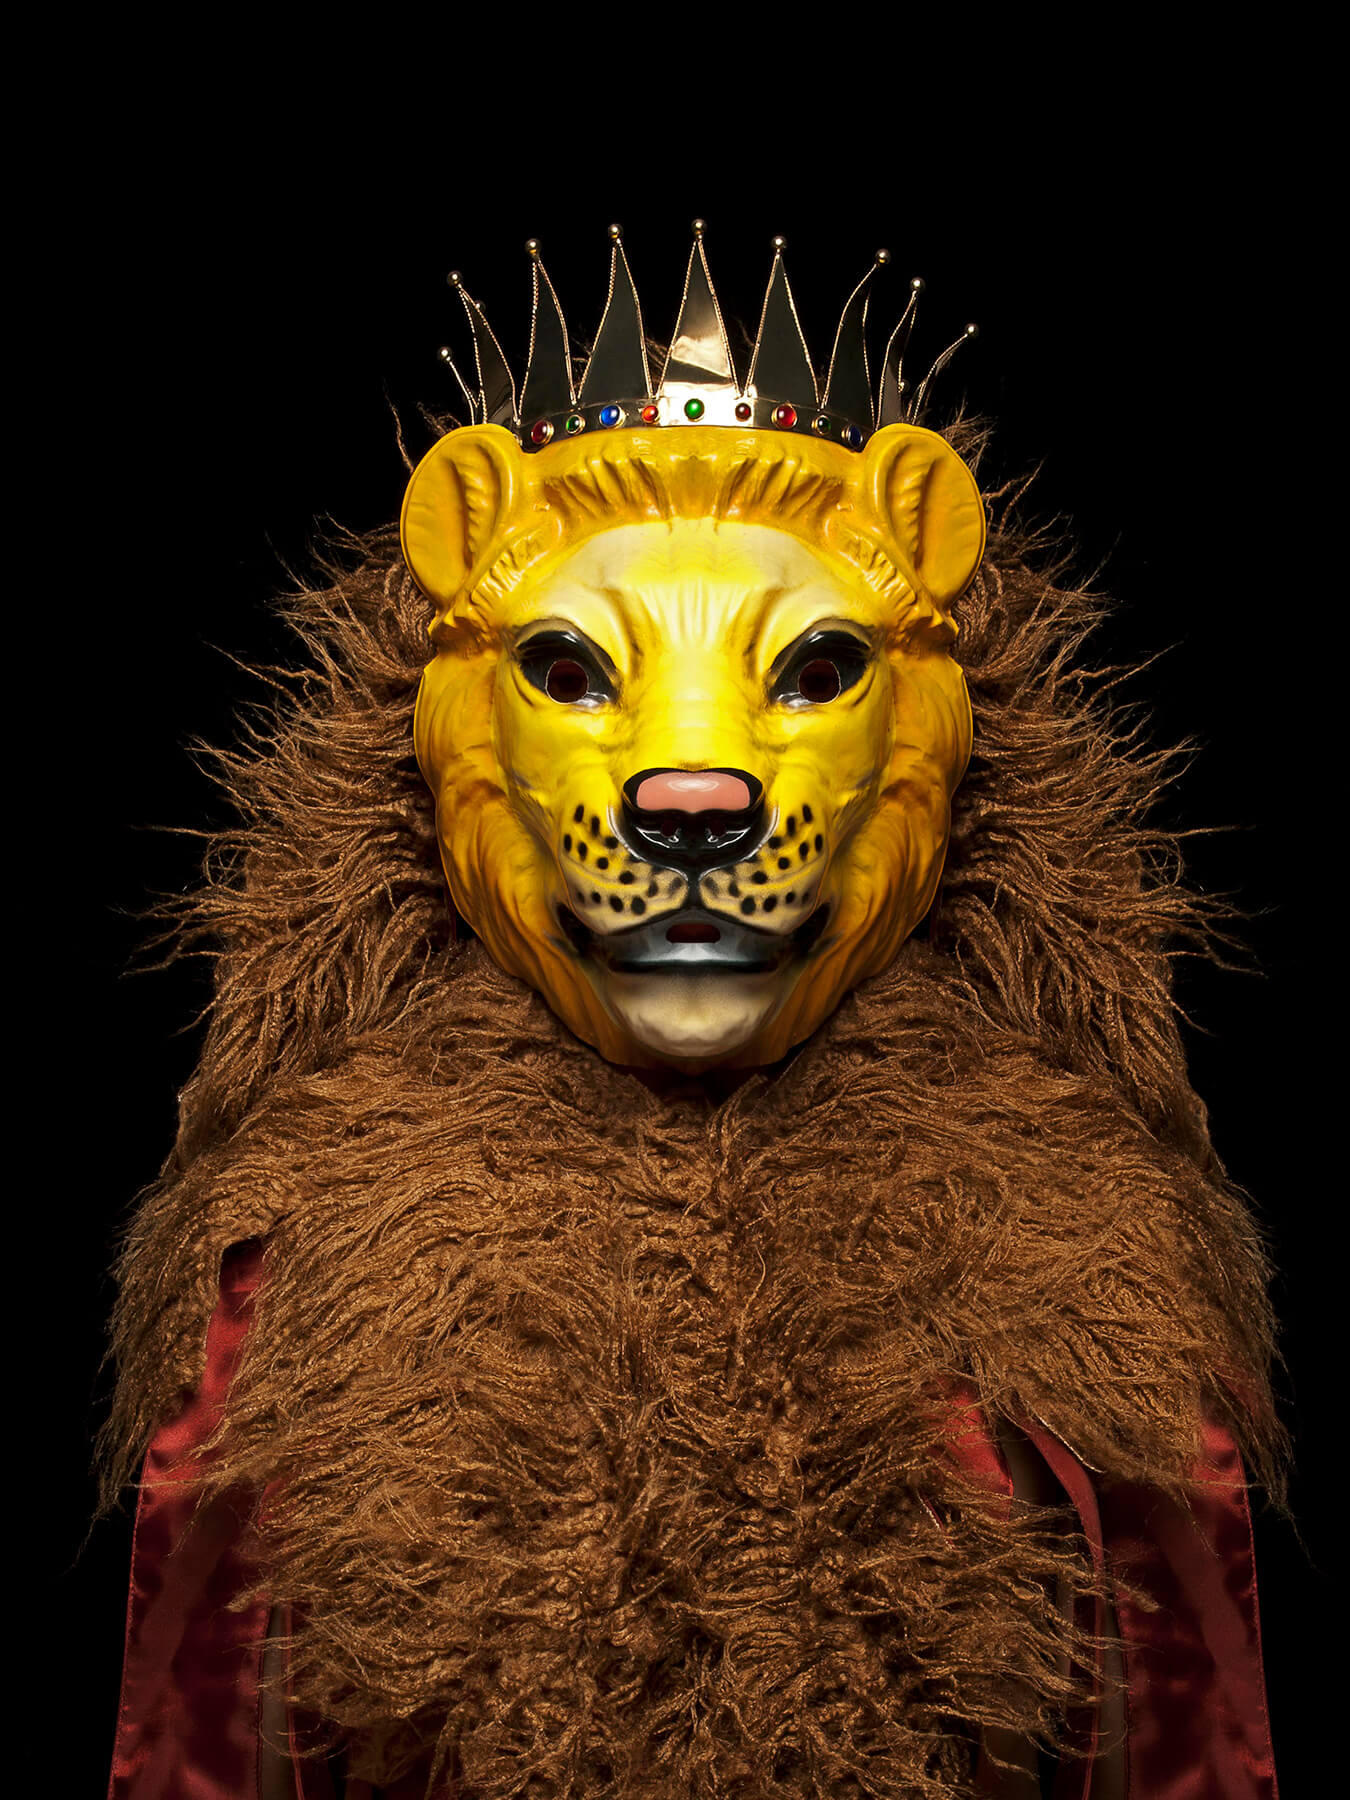 20 Jan 2018 Derong is styled as the Cowardly Lion from the wizard of oz